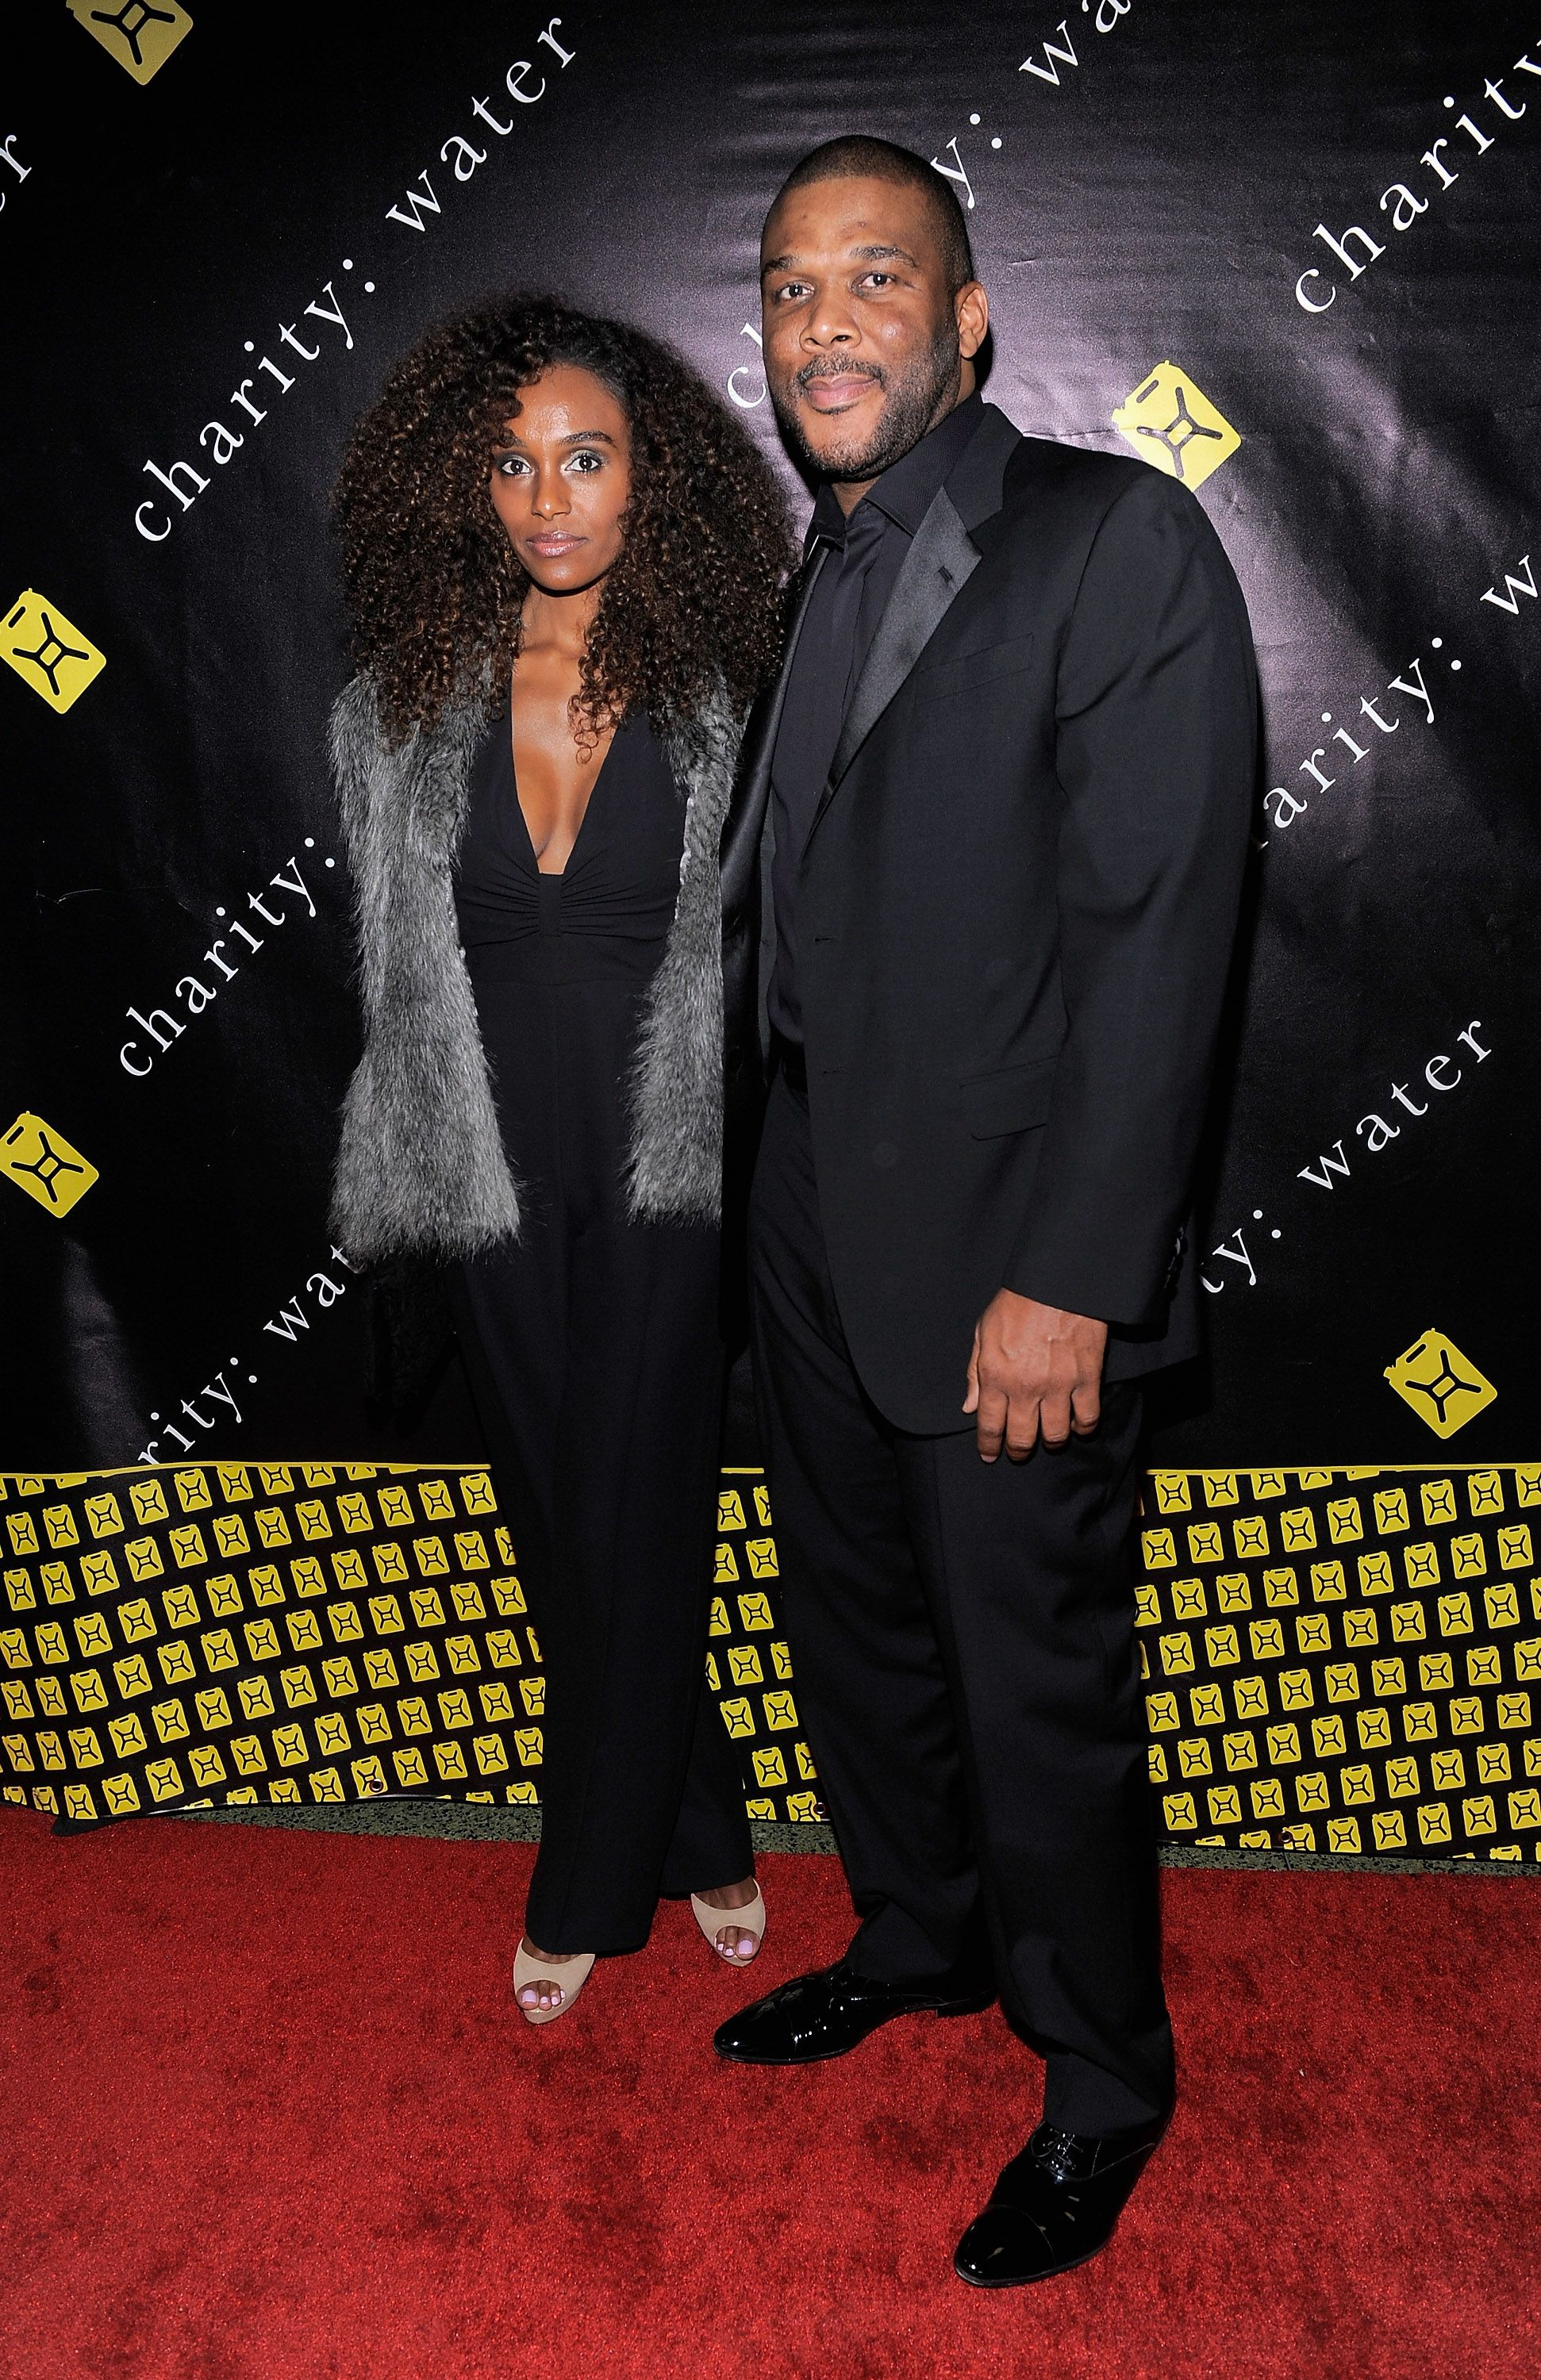 Gelila Bekele and writer/director Tyler Perry at the 6th Annual Charity Ball in 2011 in New York City | Source: Getty Images